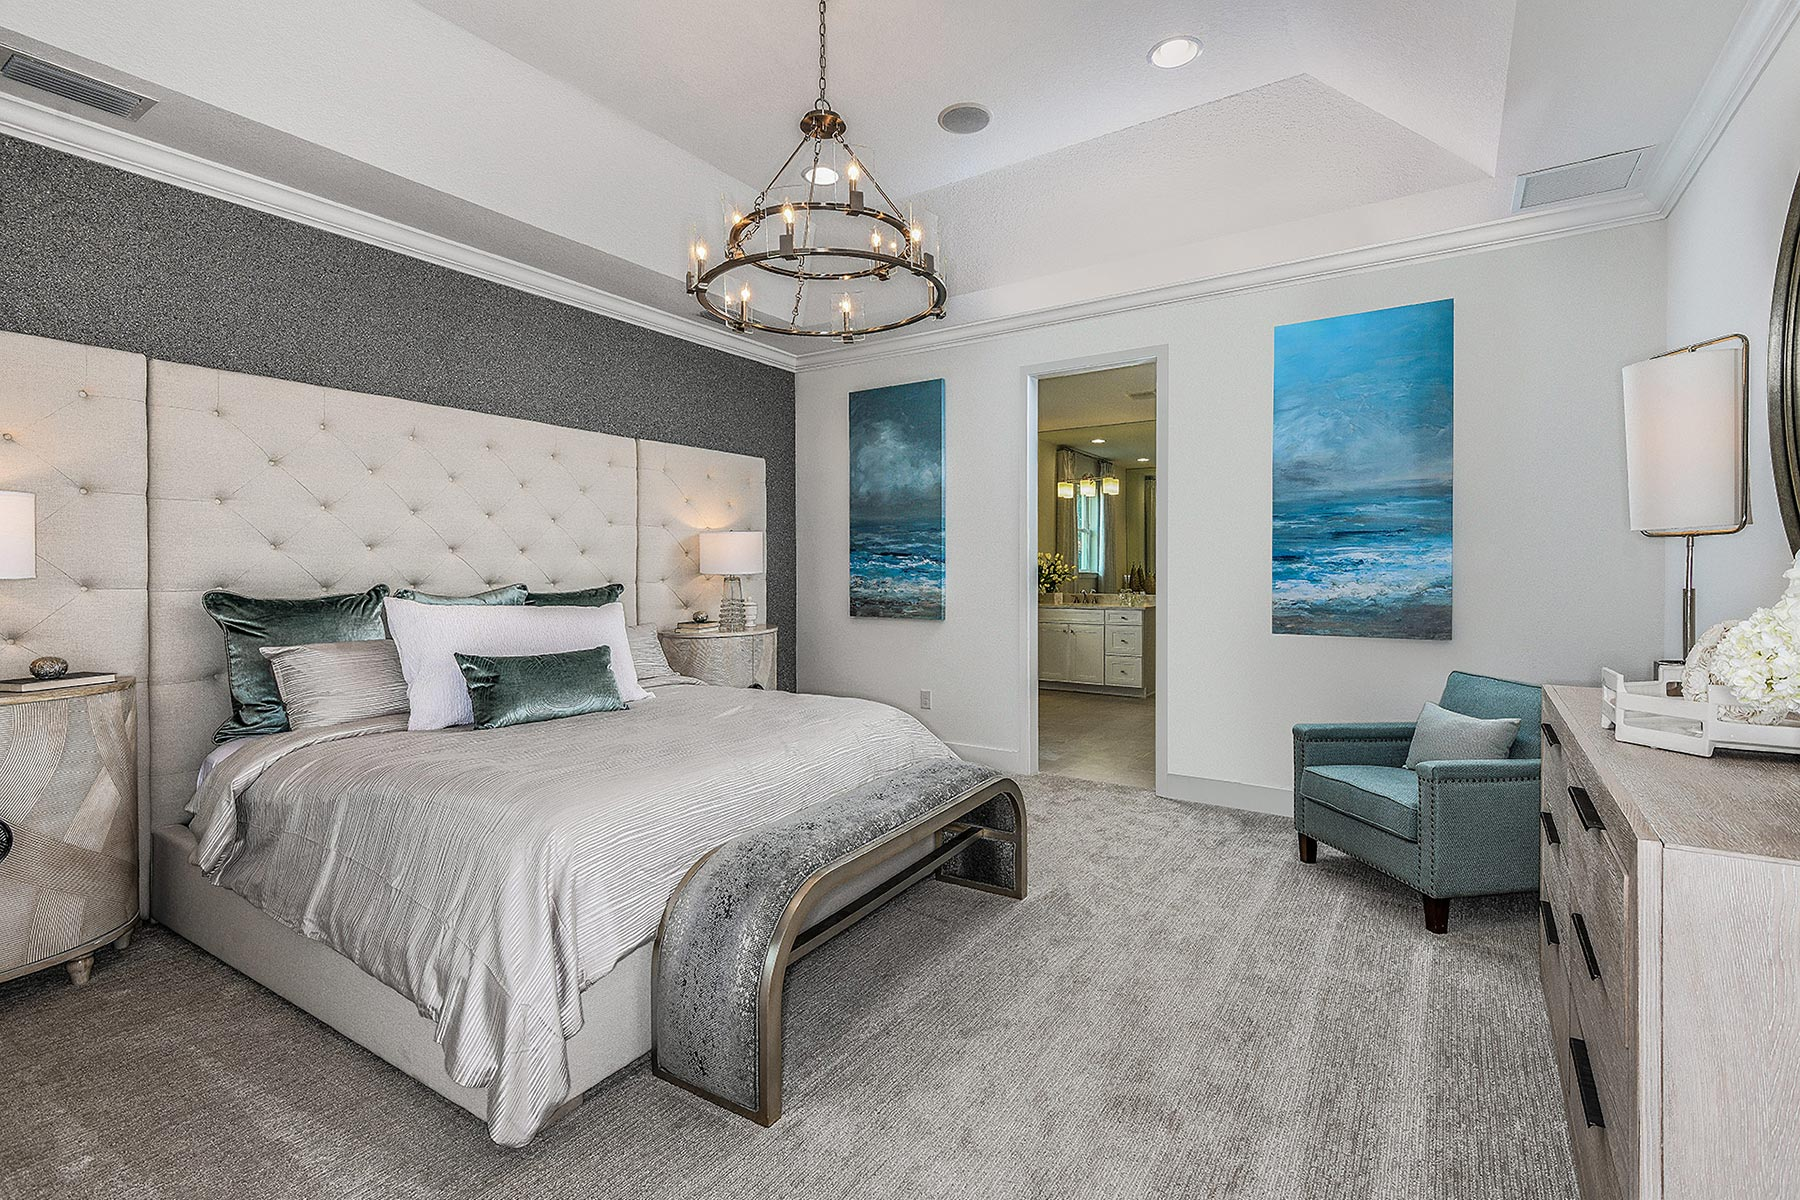 Jubilee Plan Bedroom at Sunrise Preserve at Palmer Ranch in Sarasota Florida by Mattamy Homes